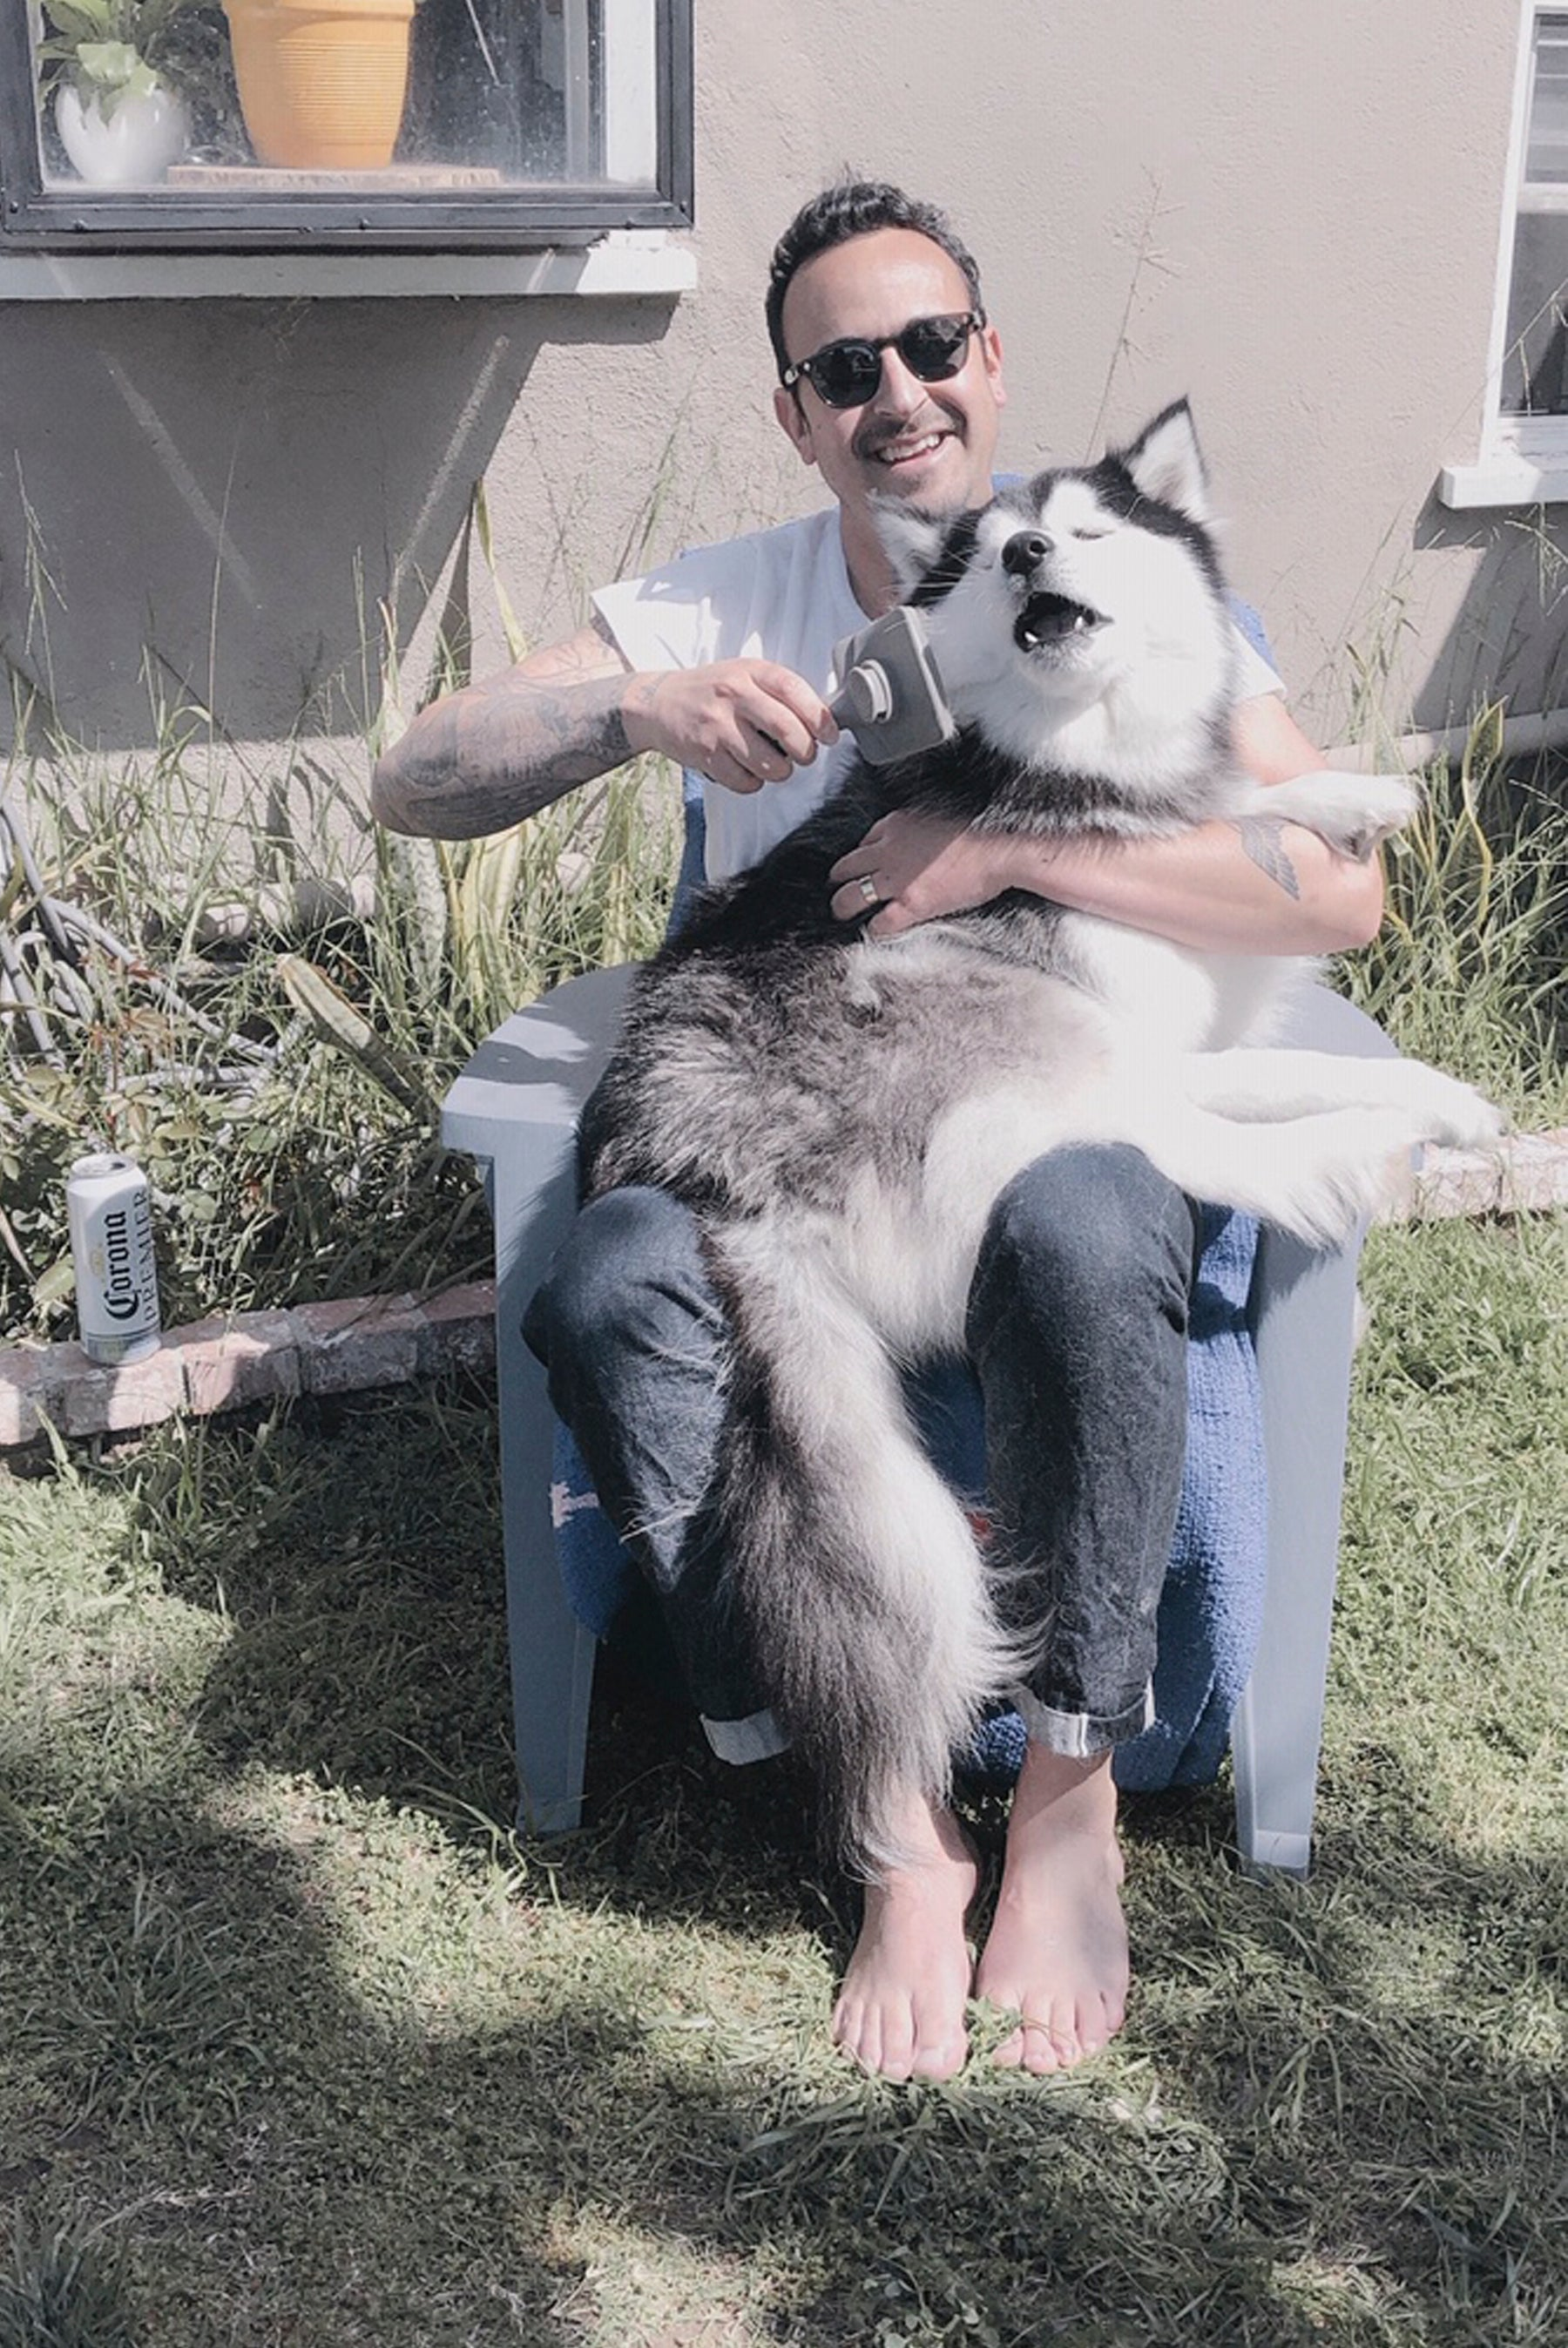 photo of Jason with dog